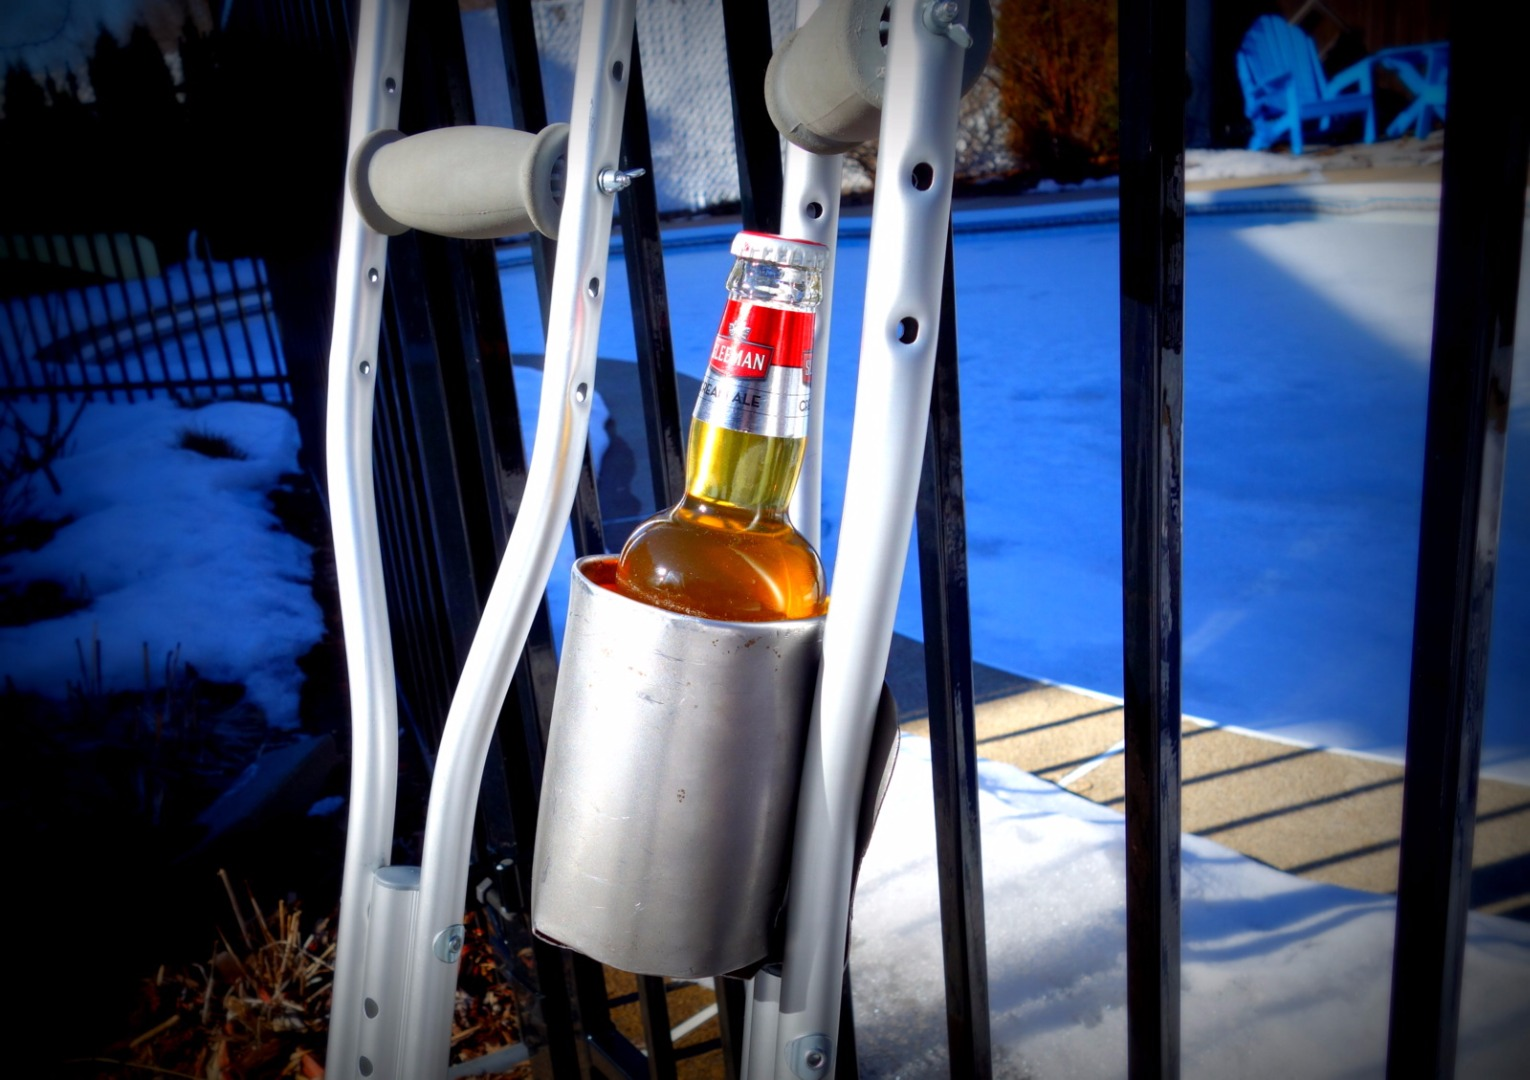 Picture of The Ambulant Crutch Cup Holder